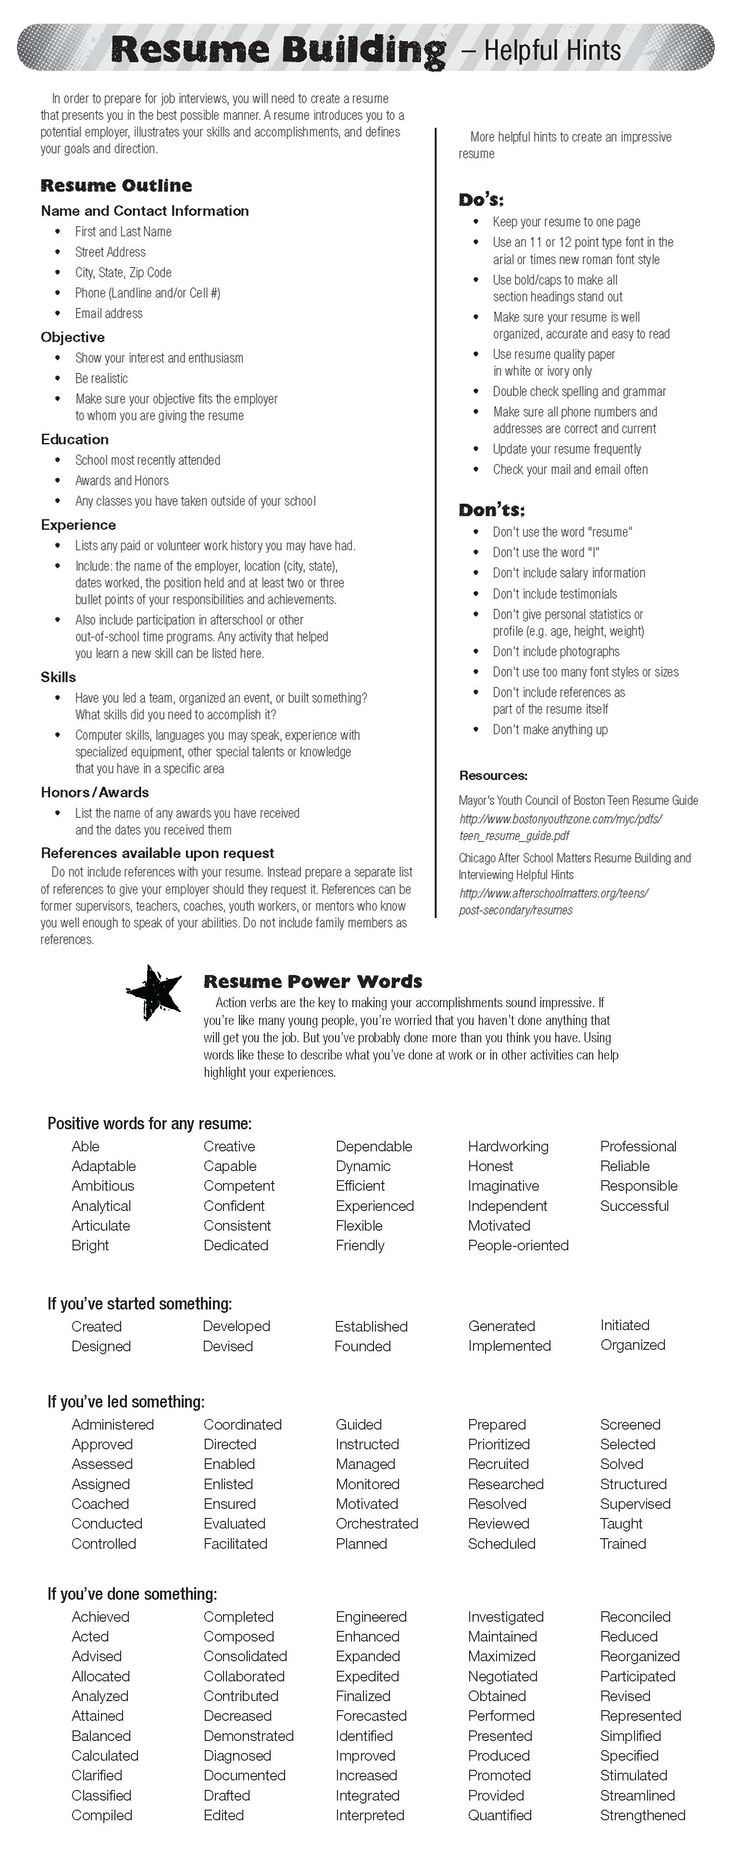 Opposenewapstandardsus  Remarkable  Ideas About Resume On Pinterest  Cv Format Resume Cv And  With Exquisite  Ideas About Resume On Pinterest  Cv Format Resume Cv And Resume Templates With Charming Business Resume Template Also Fake Resume In Addition What Does A Good Resume Look Like And How To Write A Resume With No Job Experience As Well As Find Resumes Additionally Military Resume Builder From Pinterestcom With Opposenewapstandardsus  Exquisite  Ideas About Resume On Pinterest  Cv Format Resume Cv And  With Charming  Ideas About Resume On Pinterest  Cv Format Resume Cv And Resume Templates And Remarkable Business Resume Template Also Fake Resume In Addition What Does A Good Resume Look Like From Pinterestcom